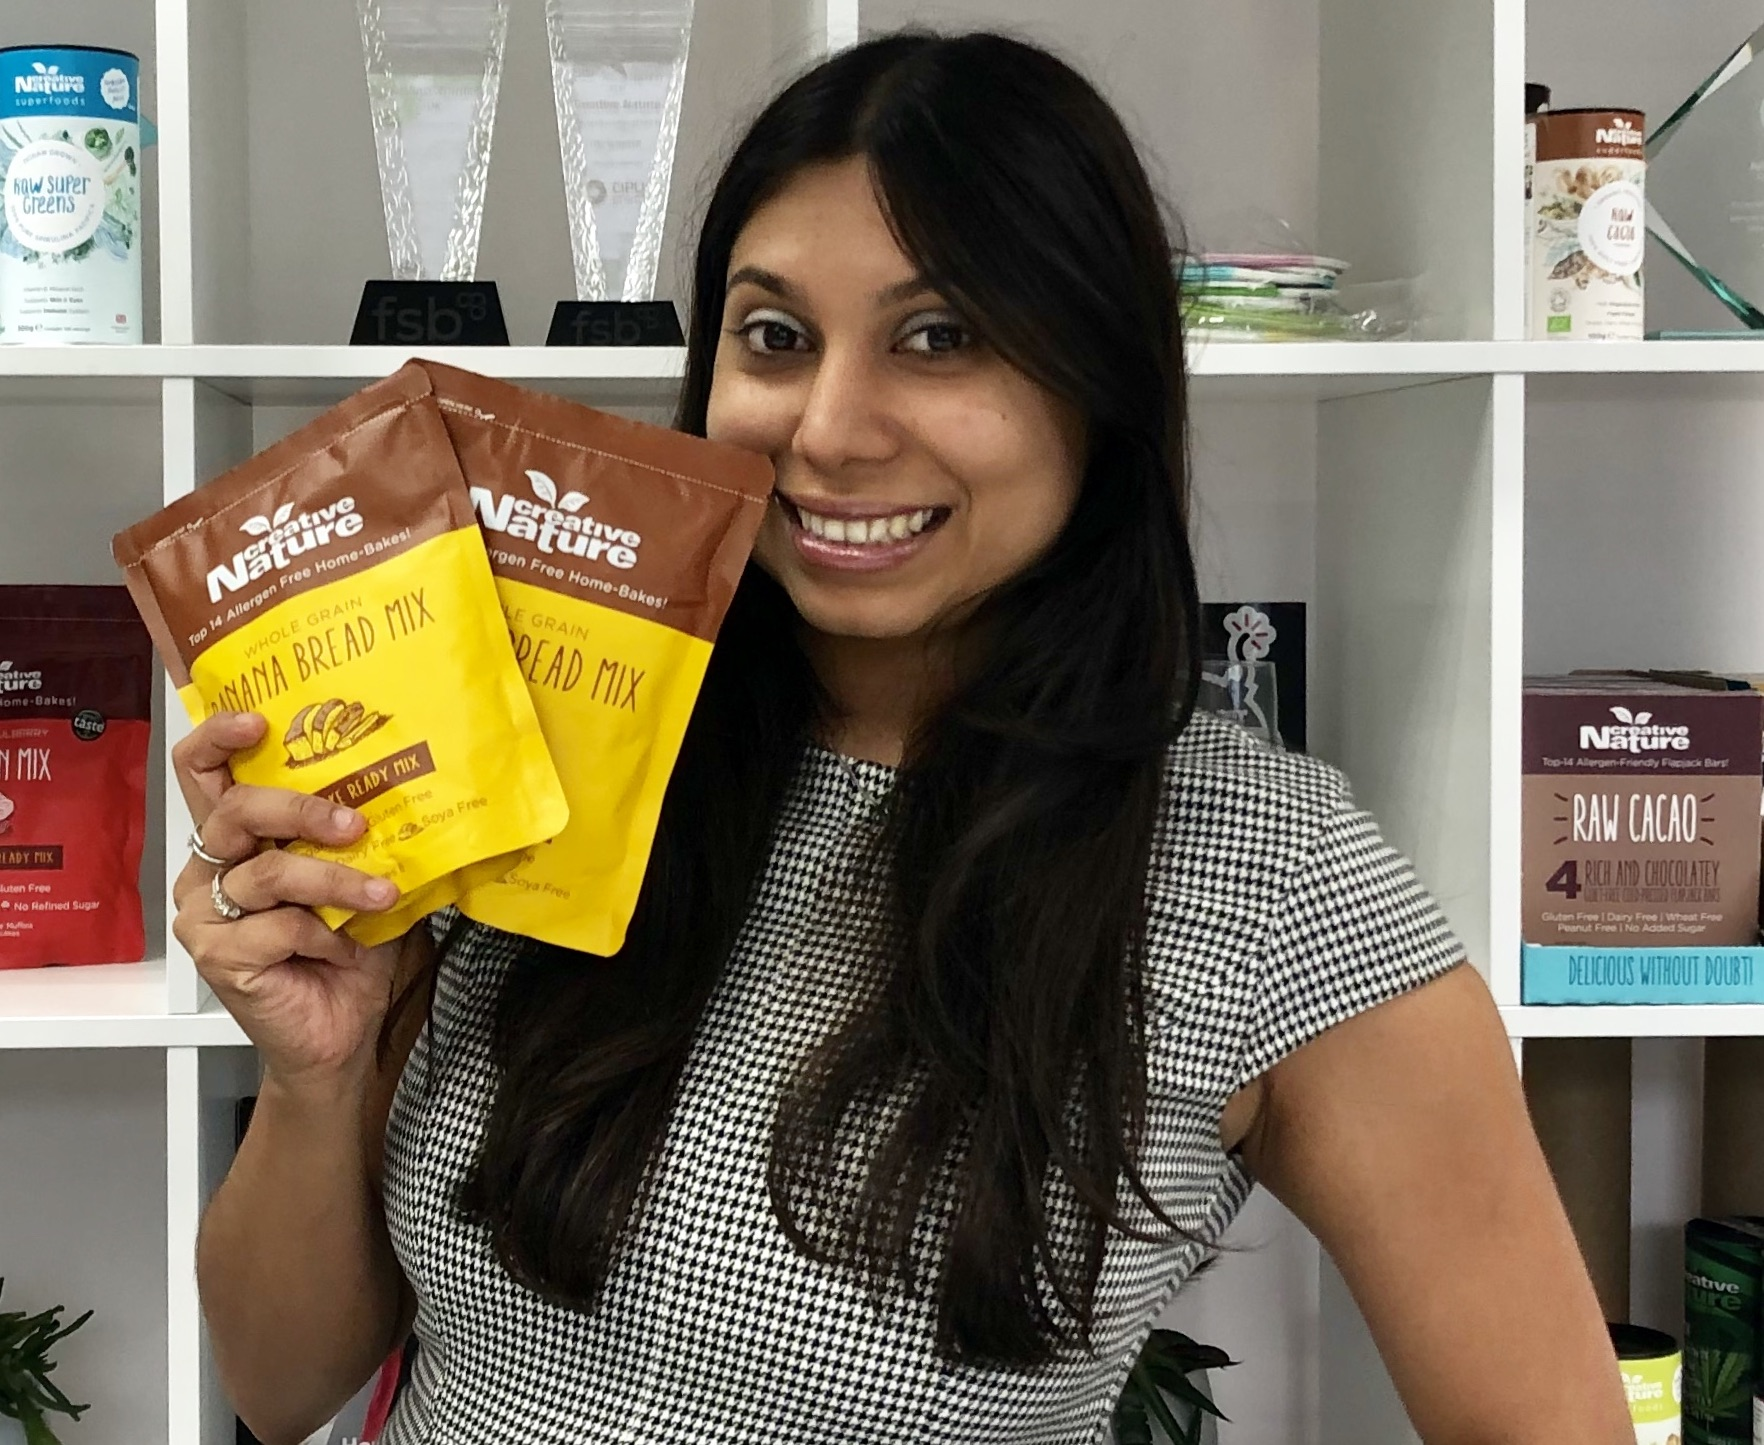 JULIANNE Ponan, CEO of leading free-from food brand Creative Nature